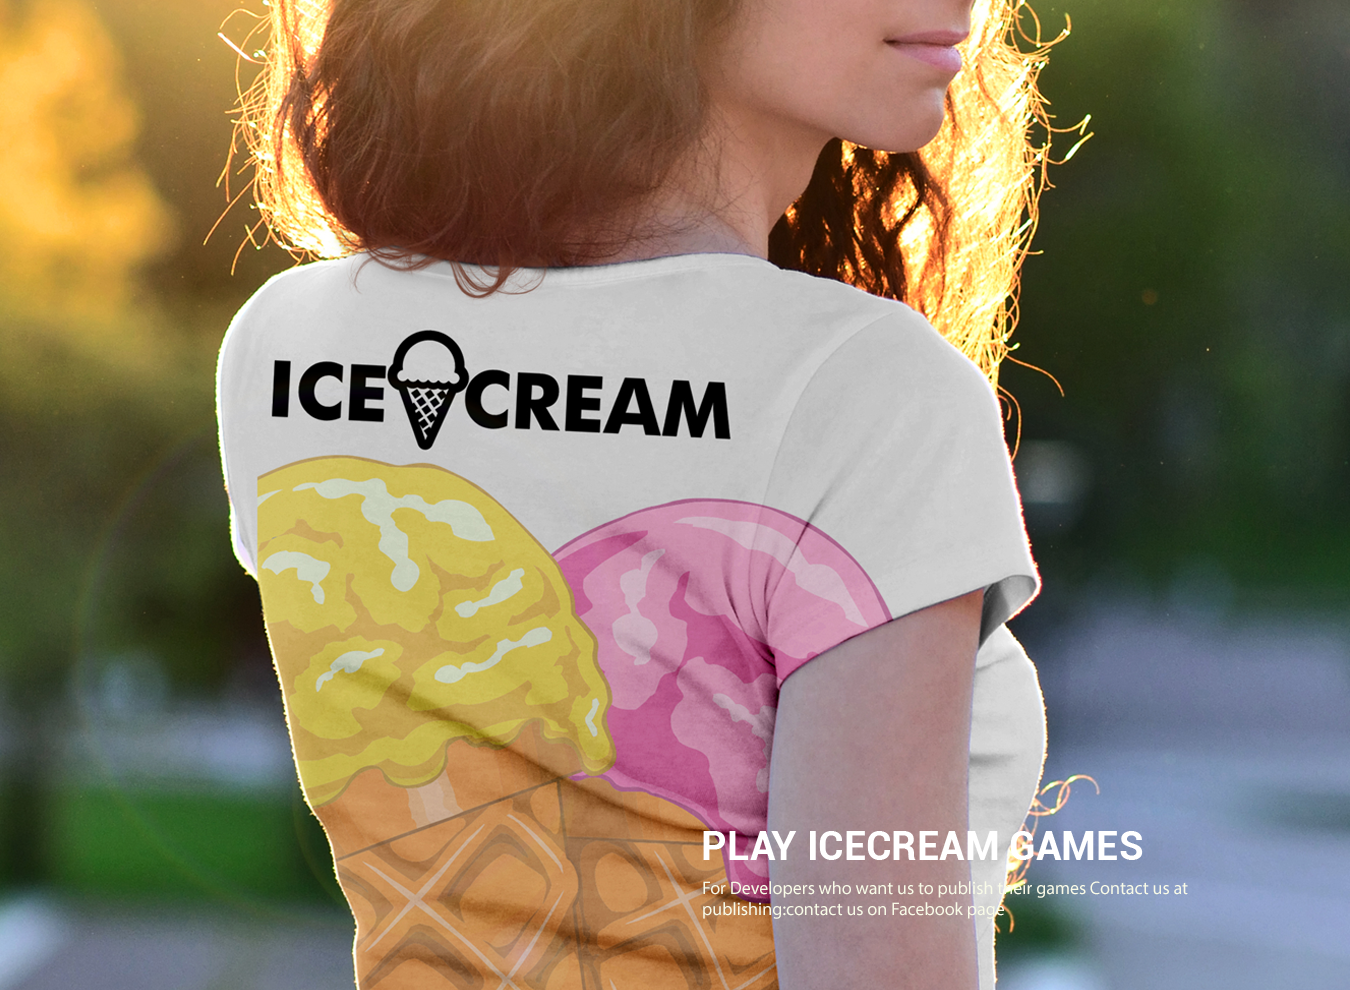 play icecream games